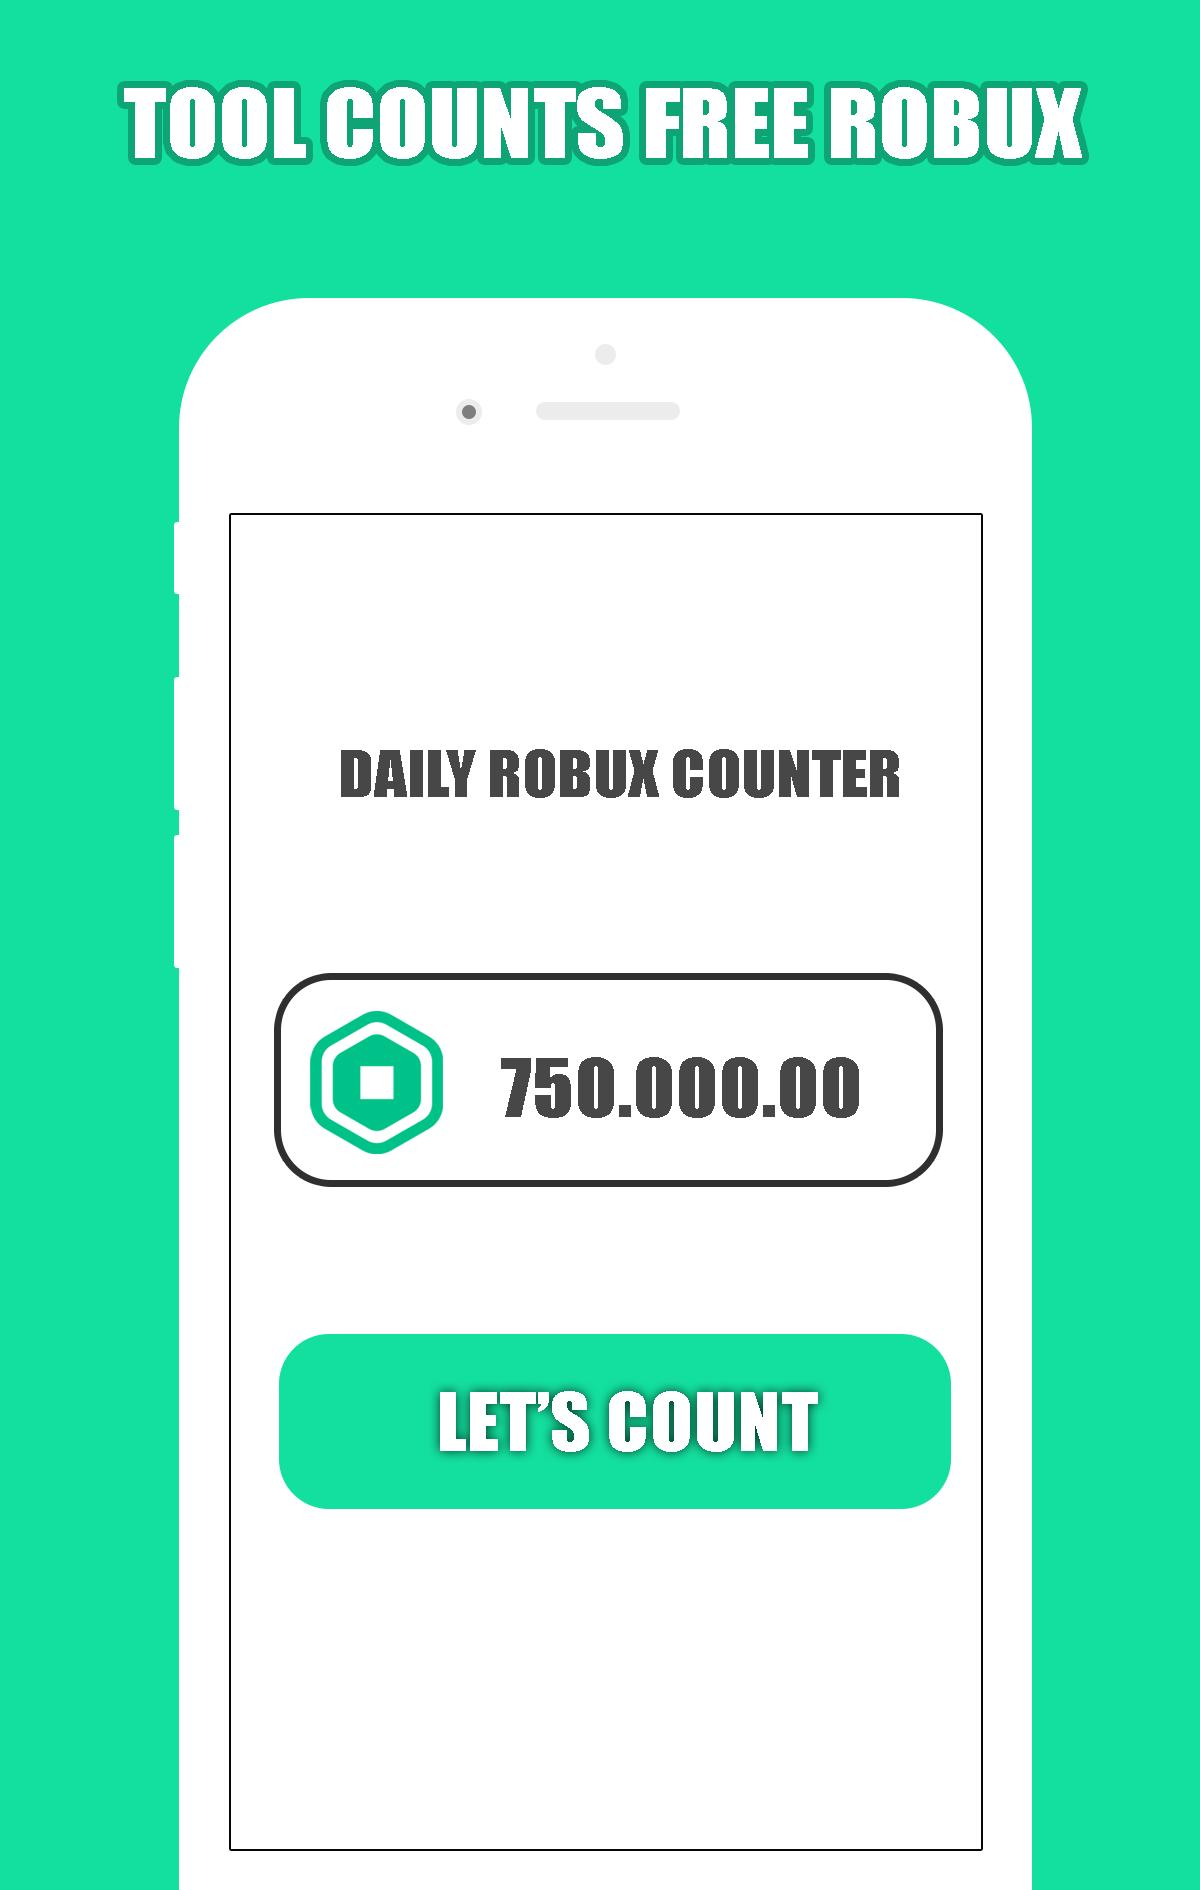 Free Robux Counter Free Rbx Calc 2020 For Android Apk Download